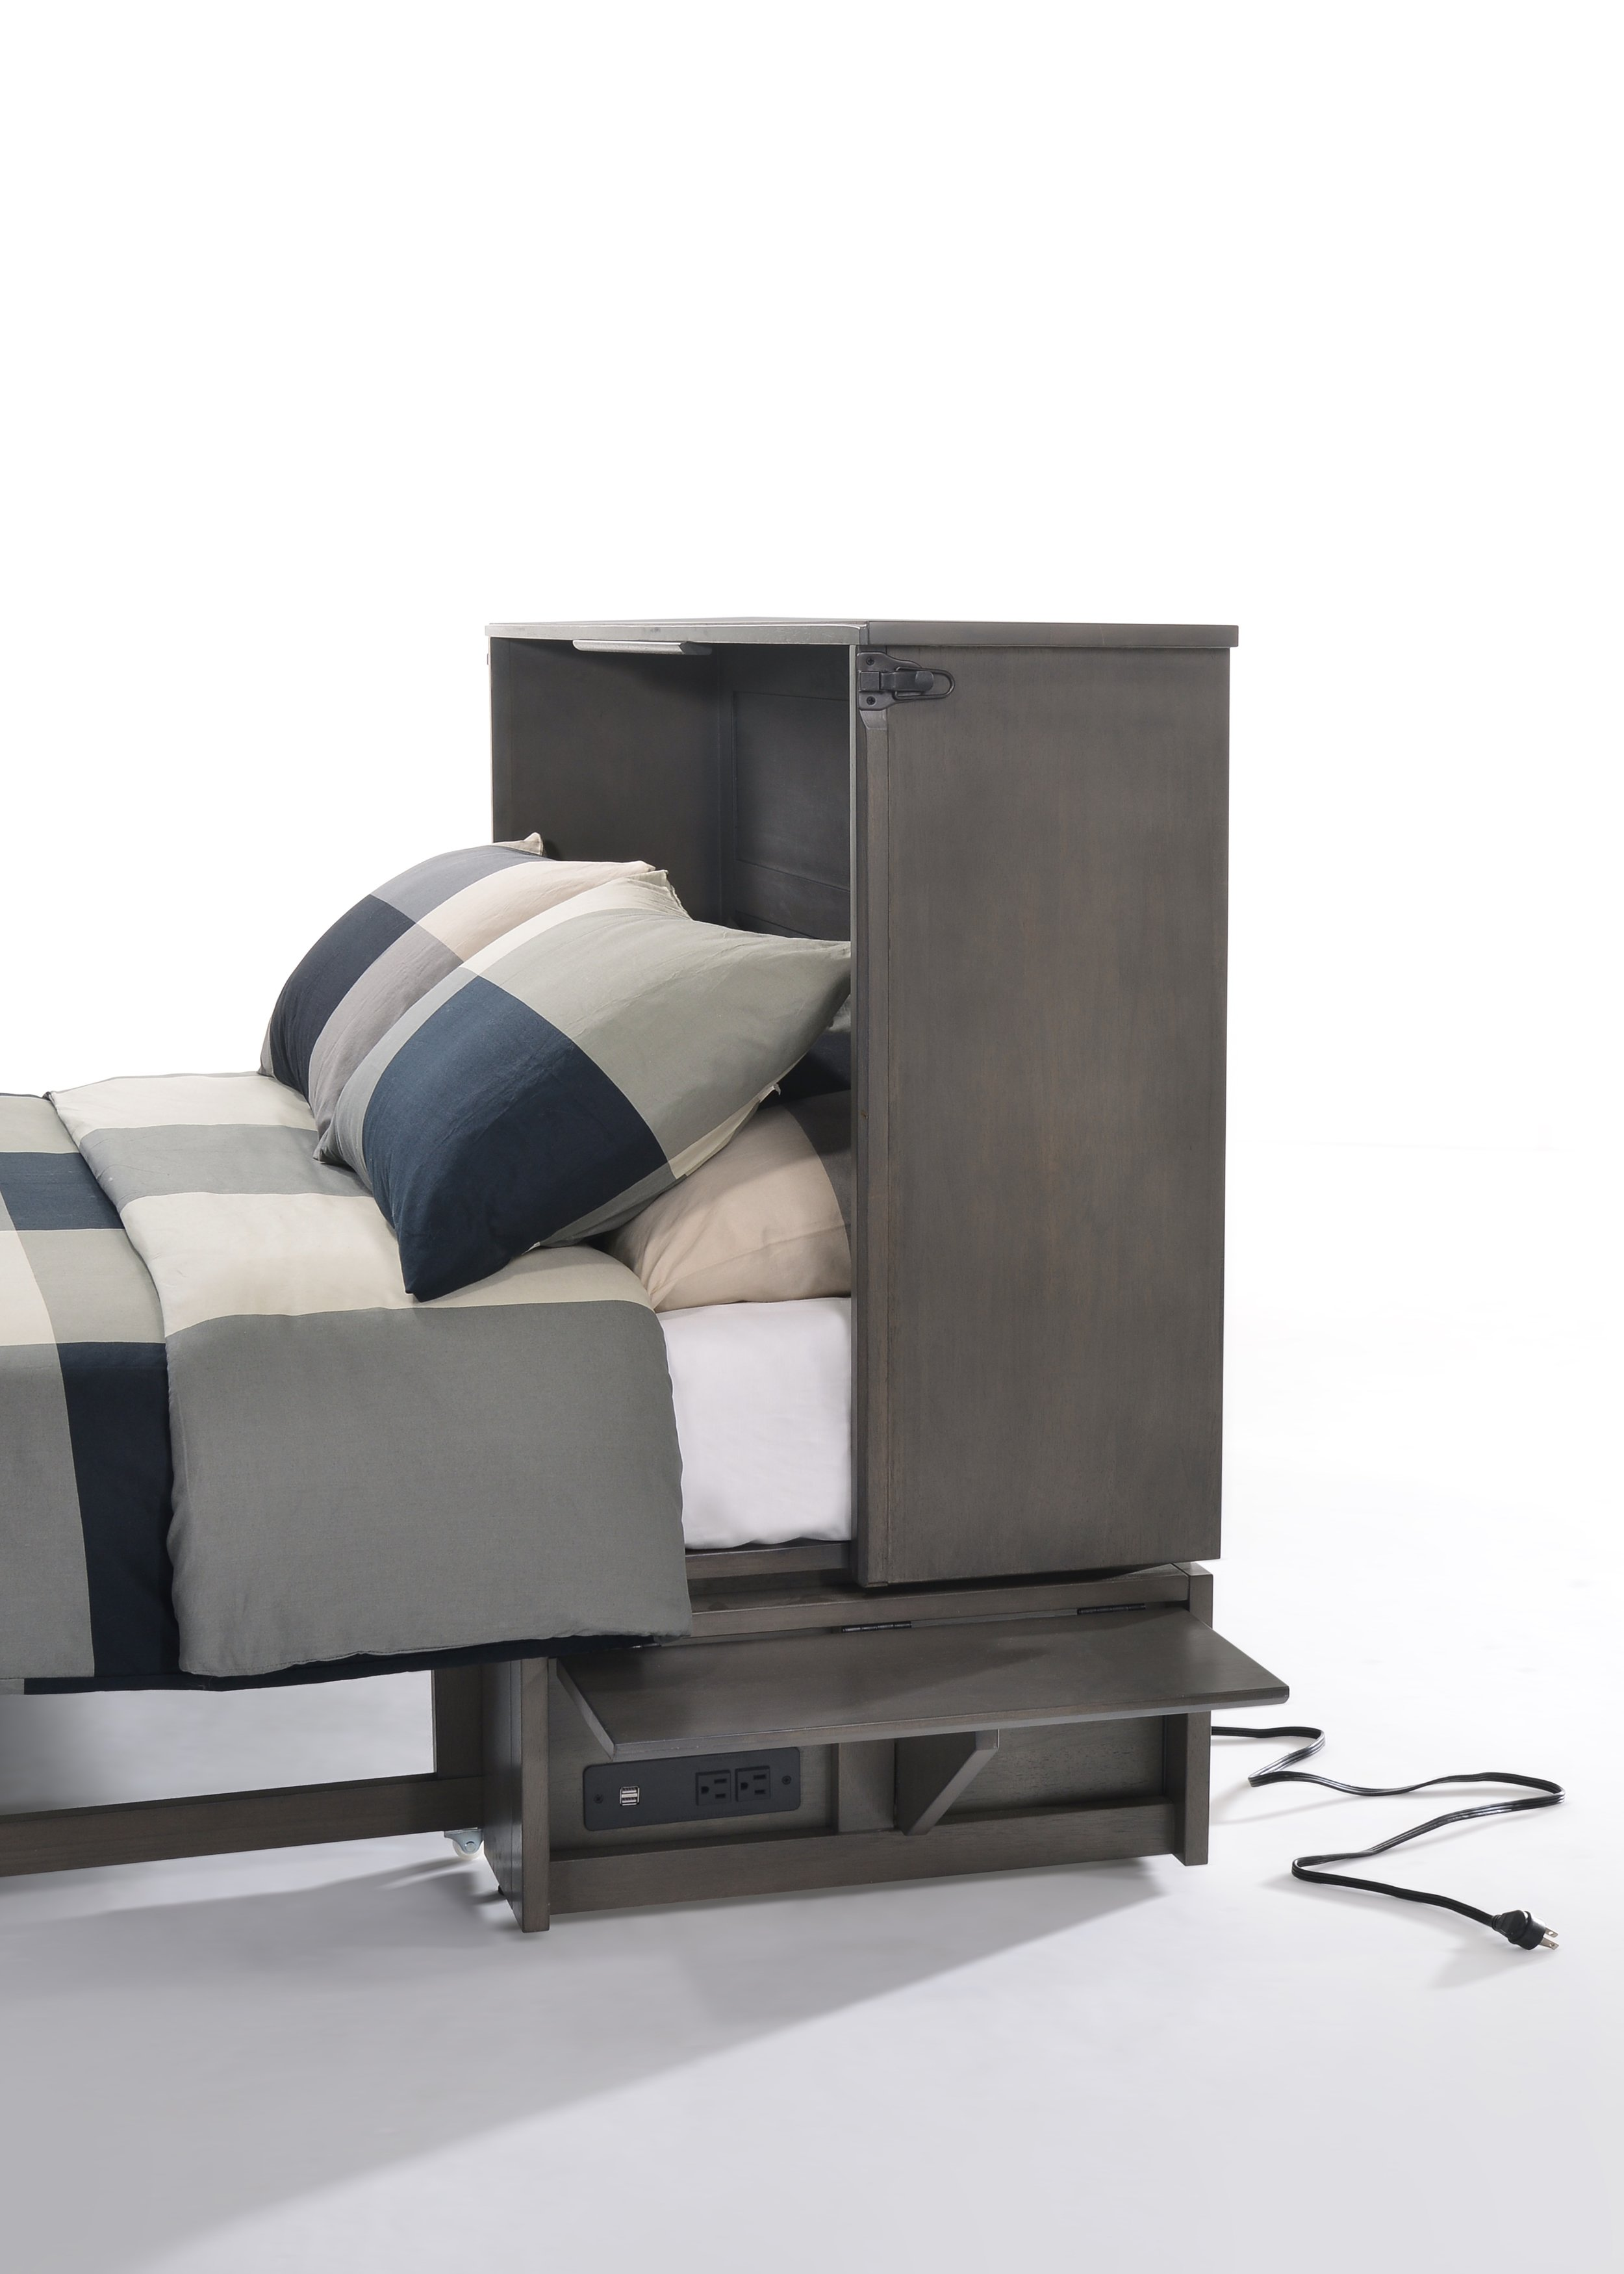 Power,USB Ports, and Night Stand -